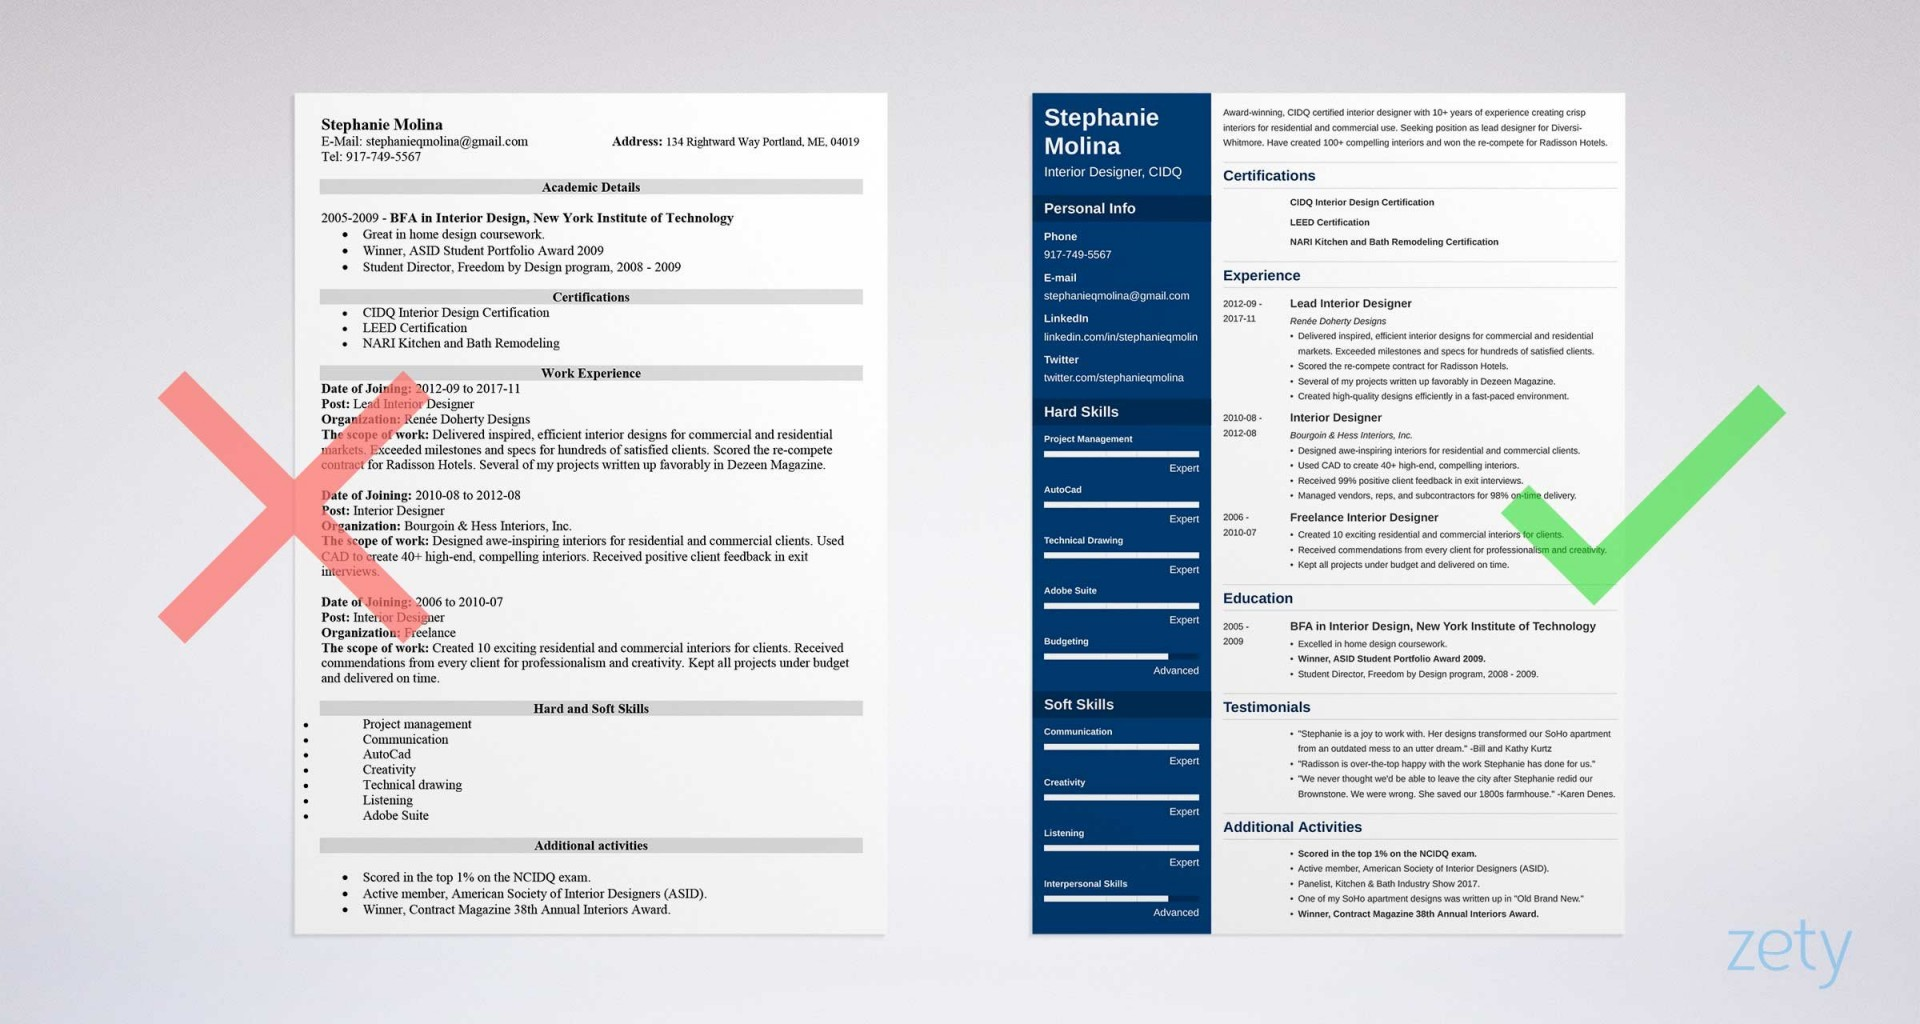 004 Impressive Best Resume Template Free High Resolution  2019 2018 Top Download1920